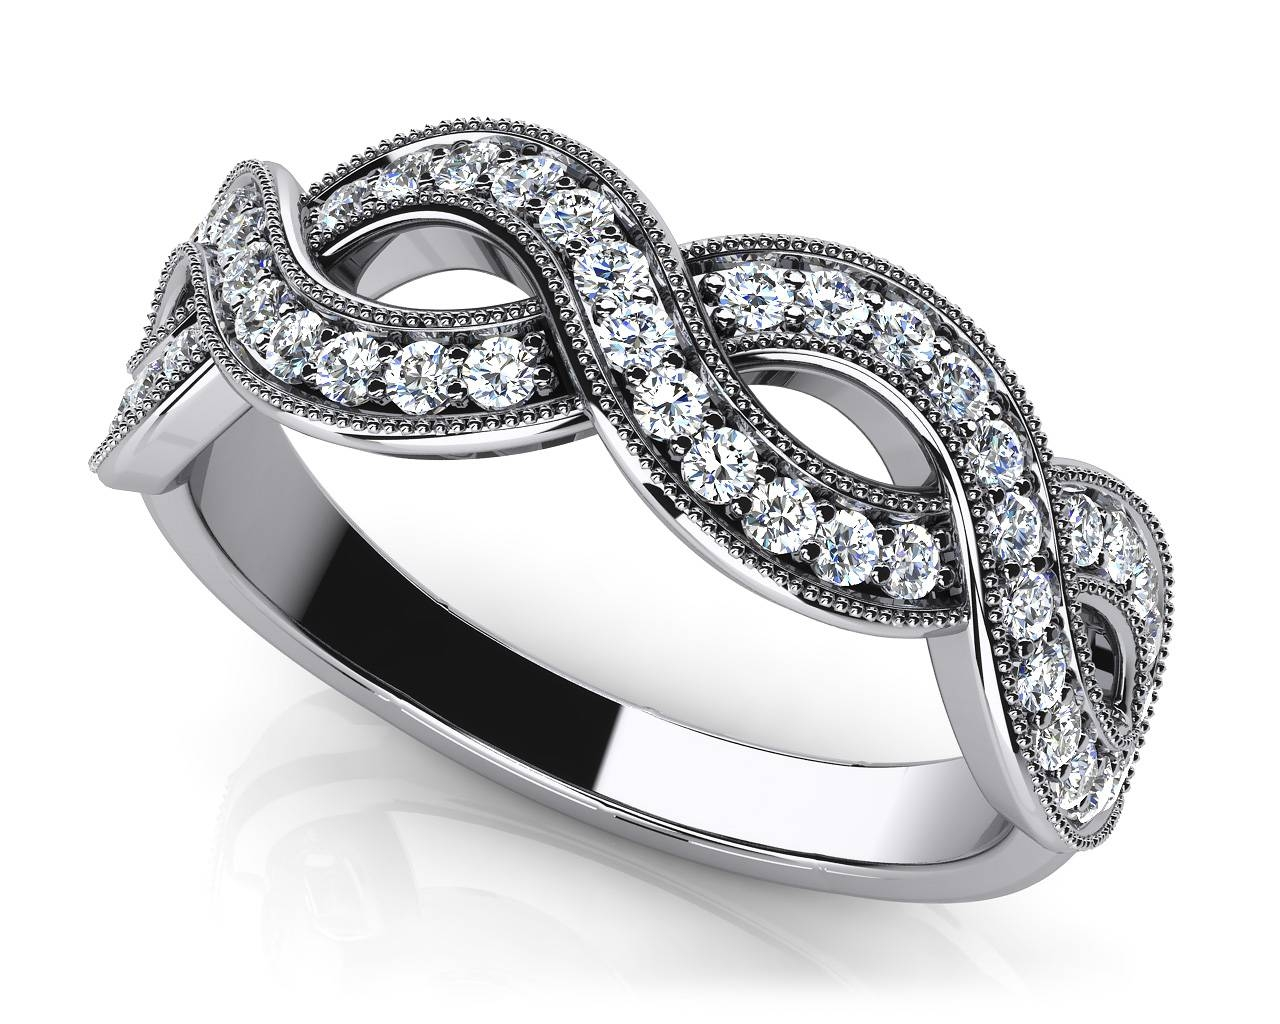 Design Your Own Diamond Anniversary Ring & Eternity Ring Regarding Most Popular Platinum Anniversary Rings (View 7 of 25)